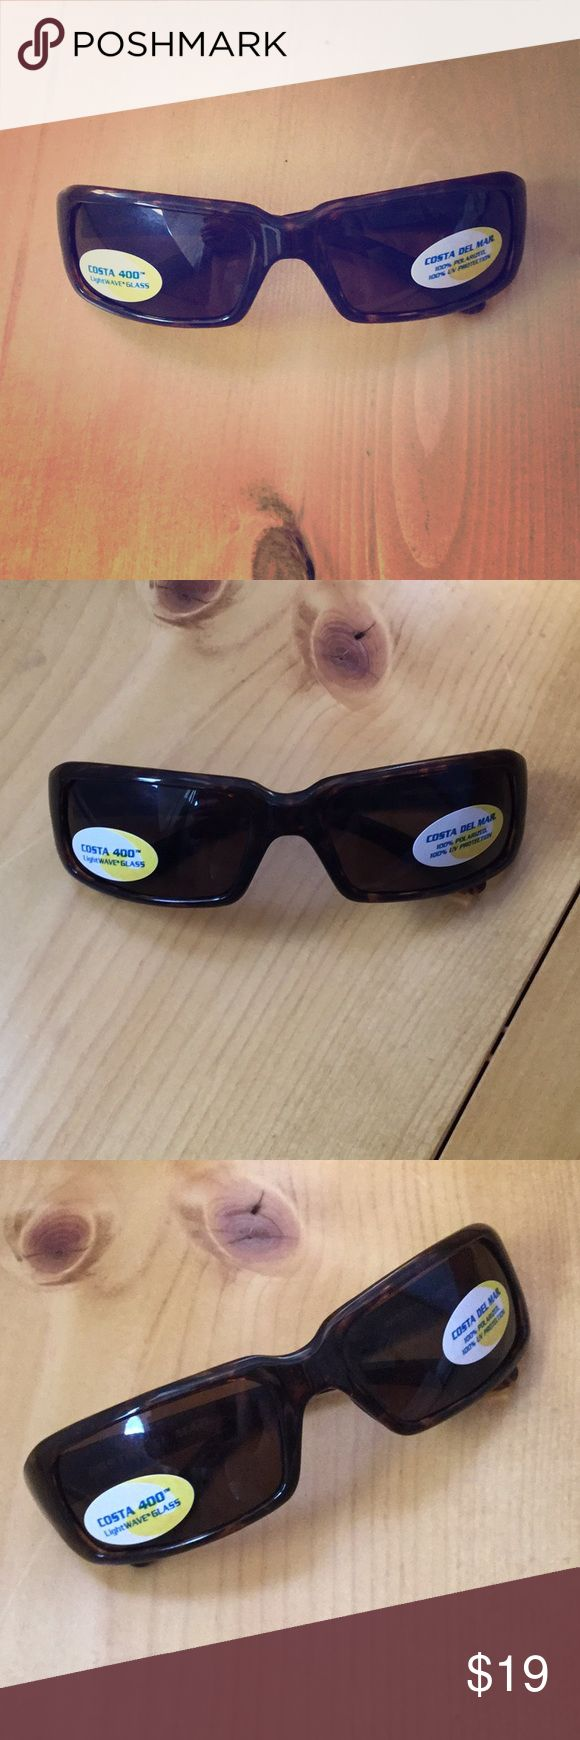 Costa Del Mar Sunglasses! These beauties have never been worn. They have all original stickers attached and they are in perfect condition. They do not come with the case. Perfect for any outdoor weather activities! Costa Del Mar Accessories Sunglasses